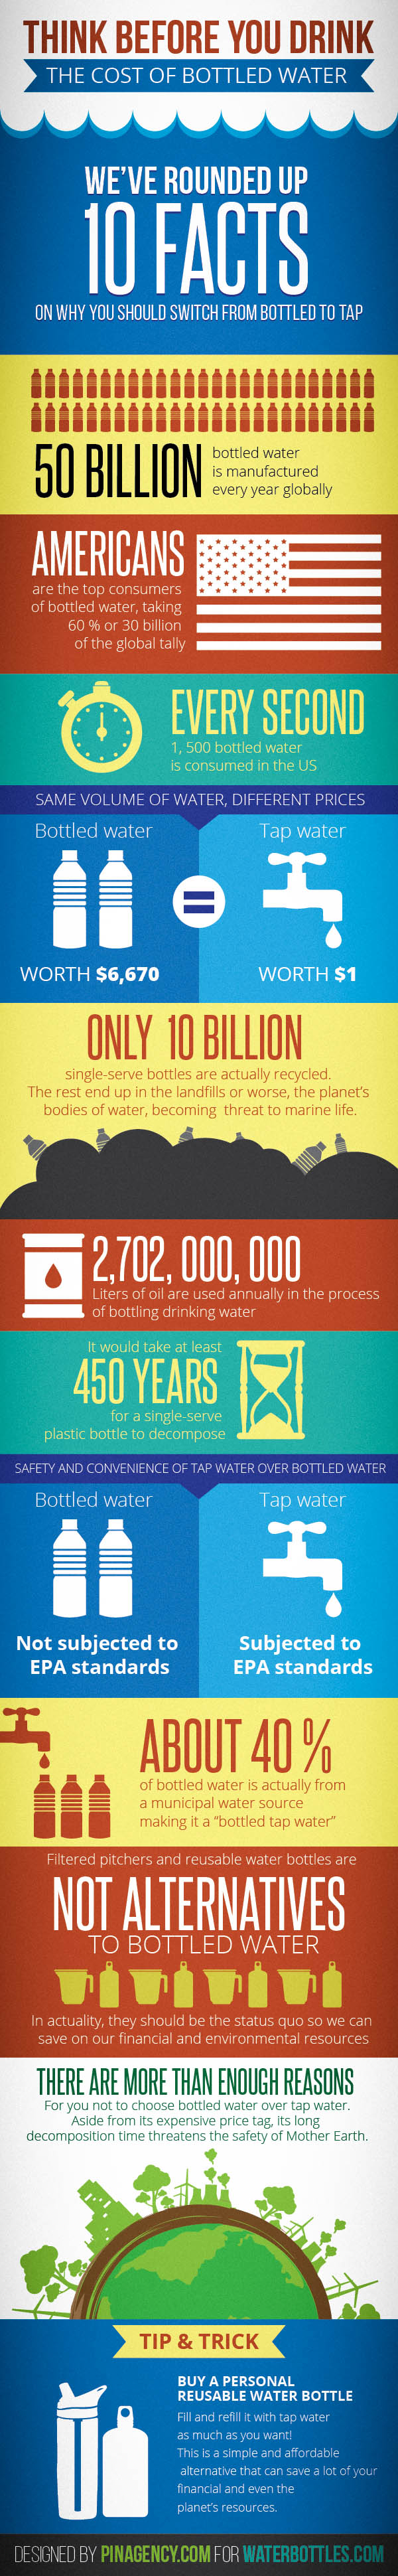 Think-Before-You-Drink-The-Costs-of-Bottled-Water1